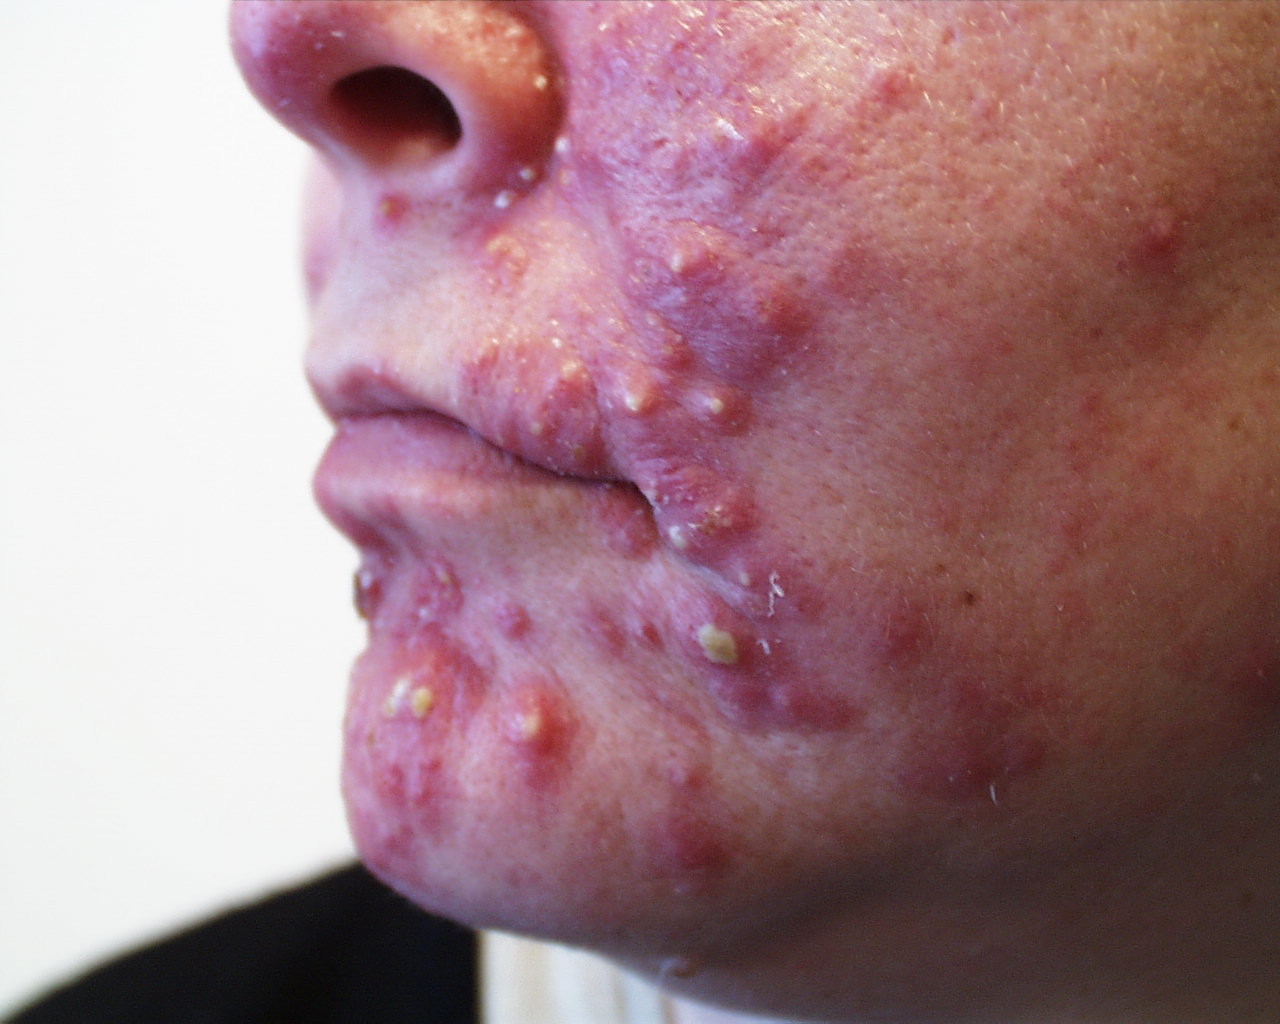 acne in adults